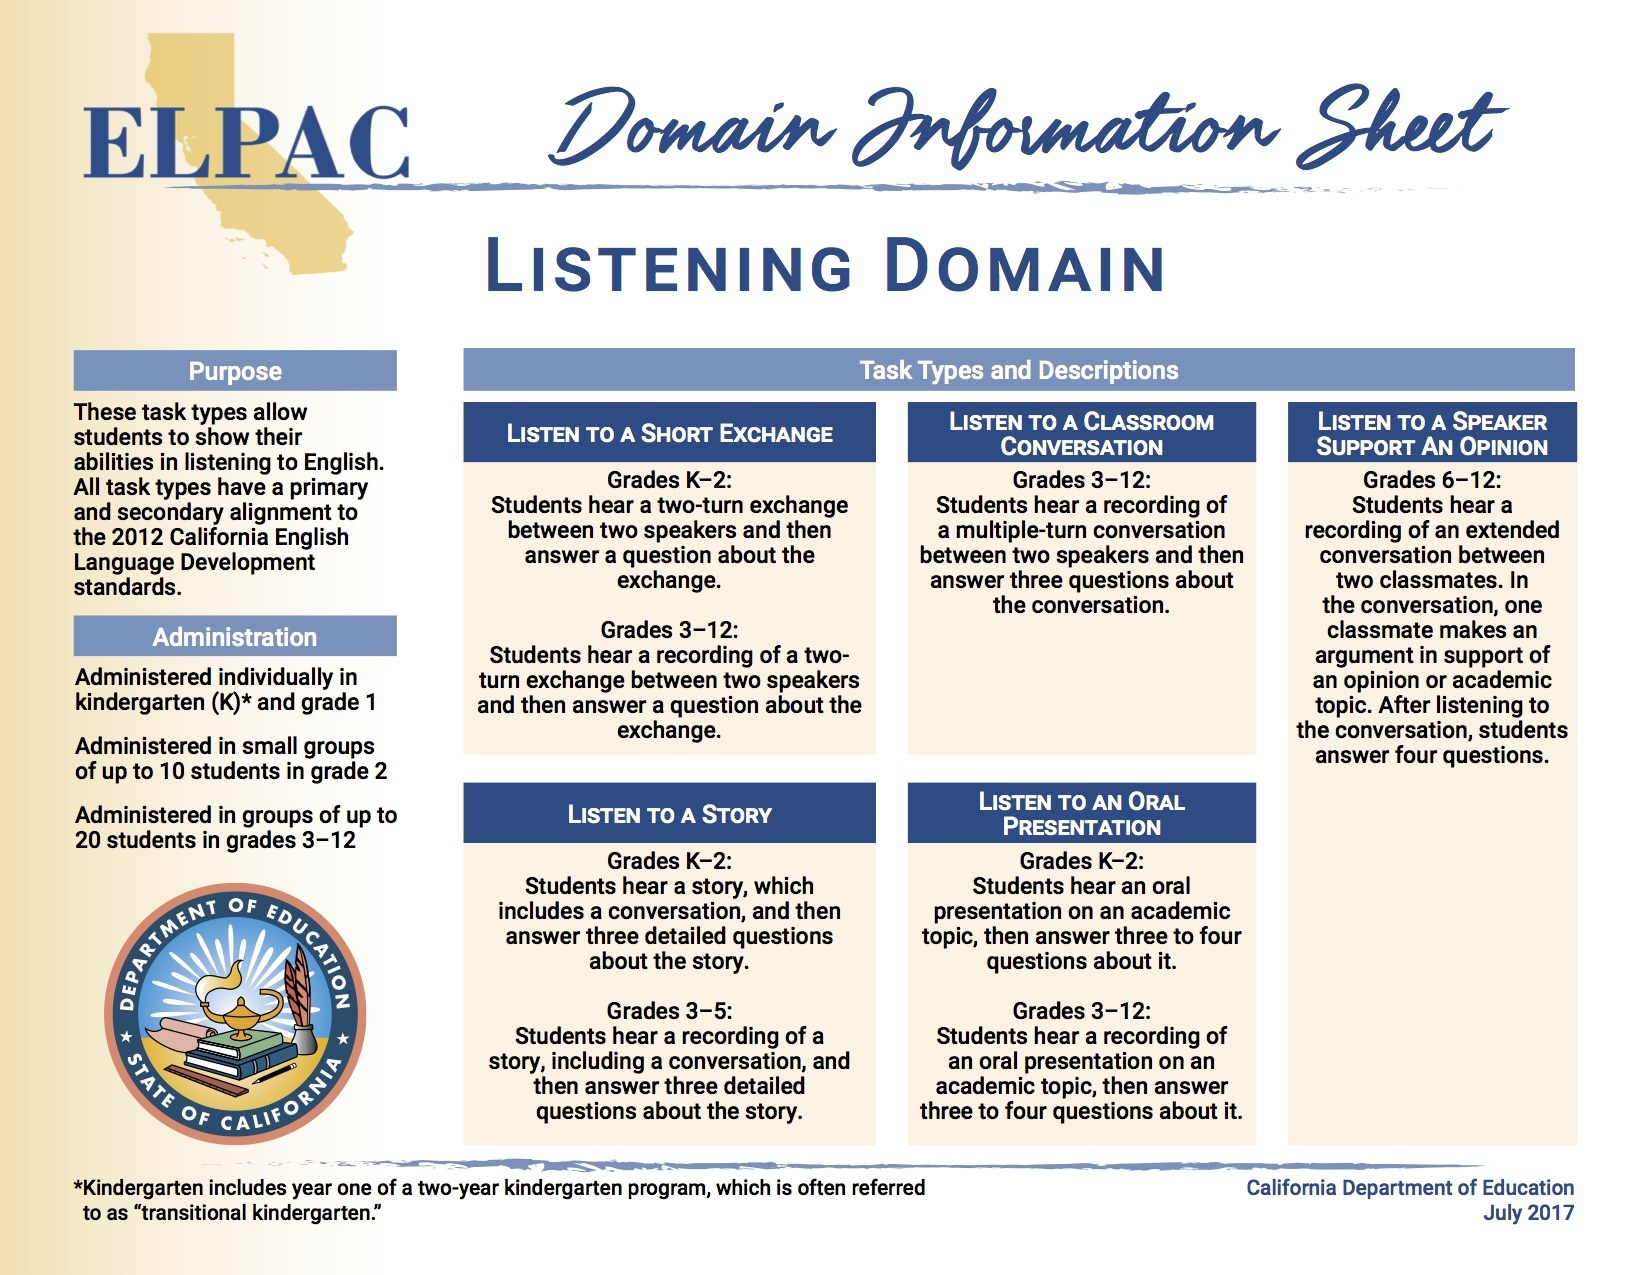 ELPAC Listening Domain Information Sheet